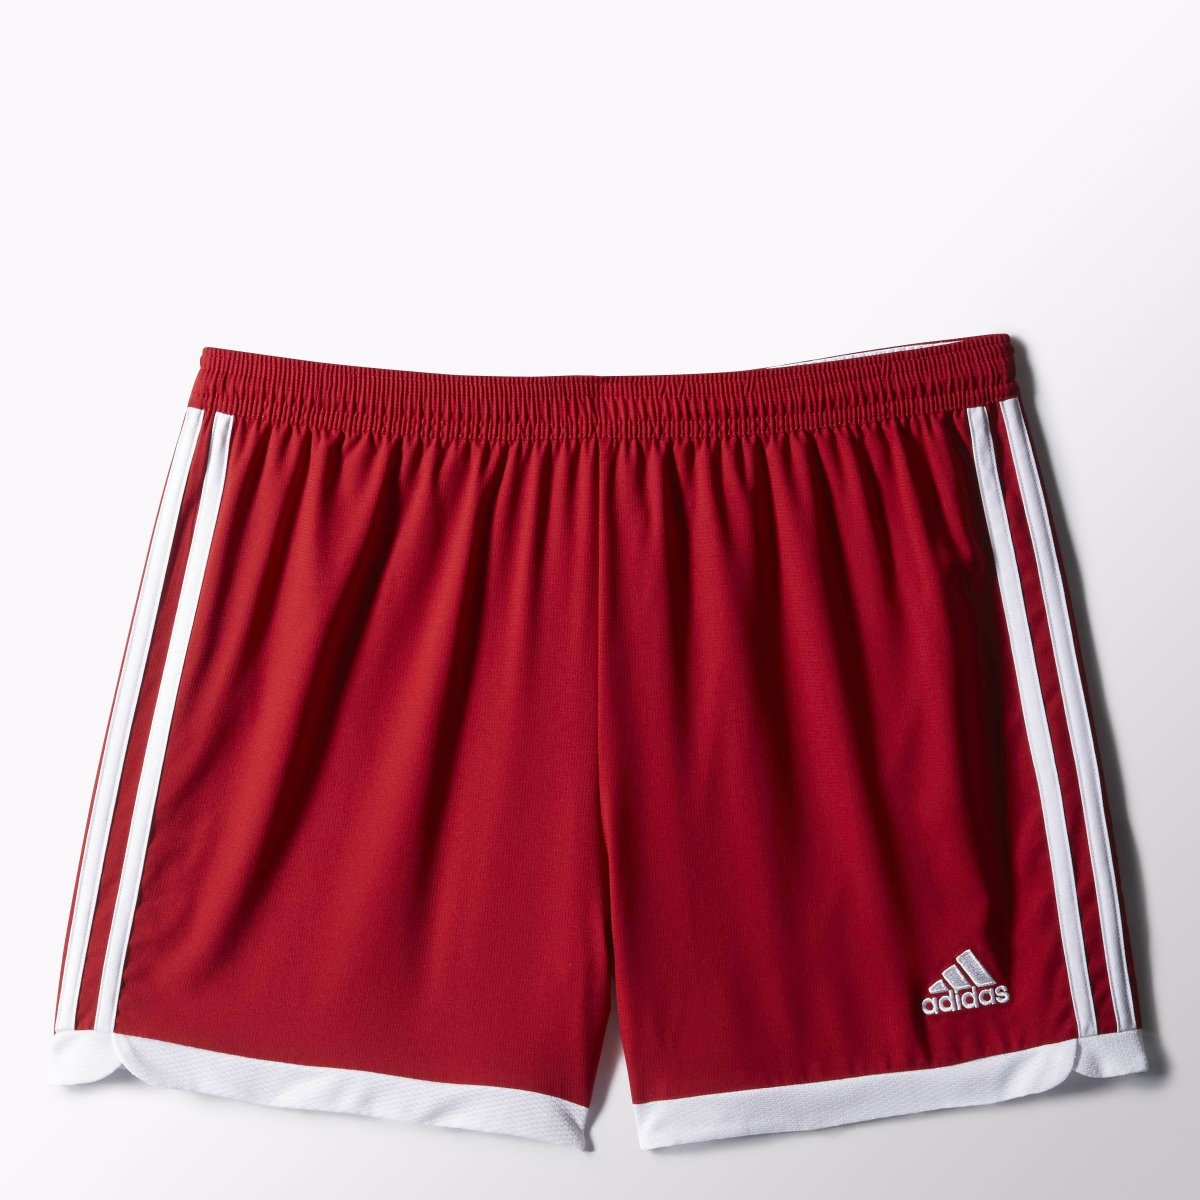 Adidas Youth Tastigo 15 kurz